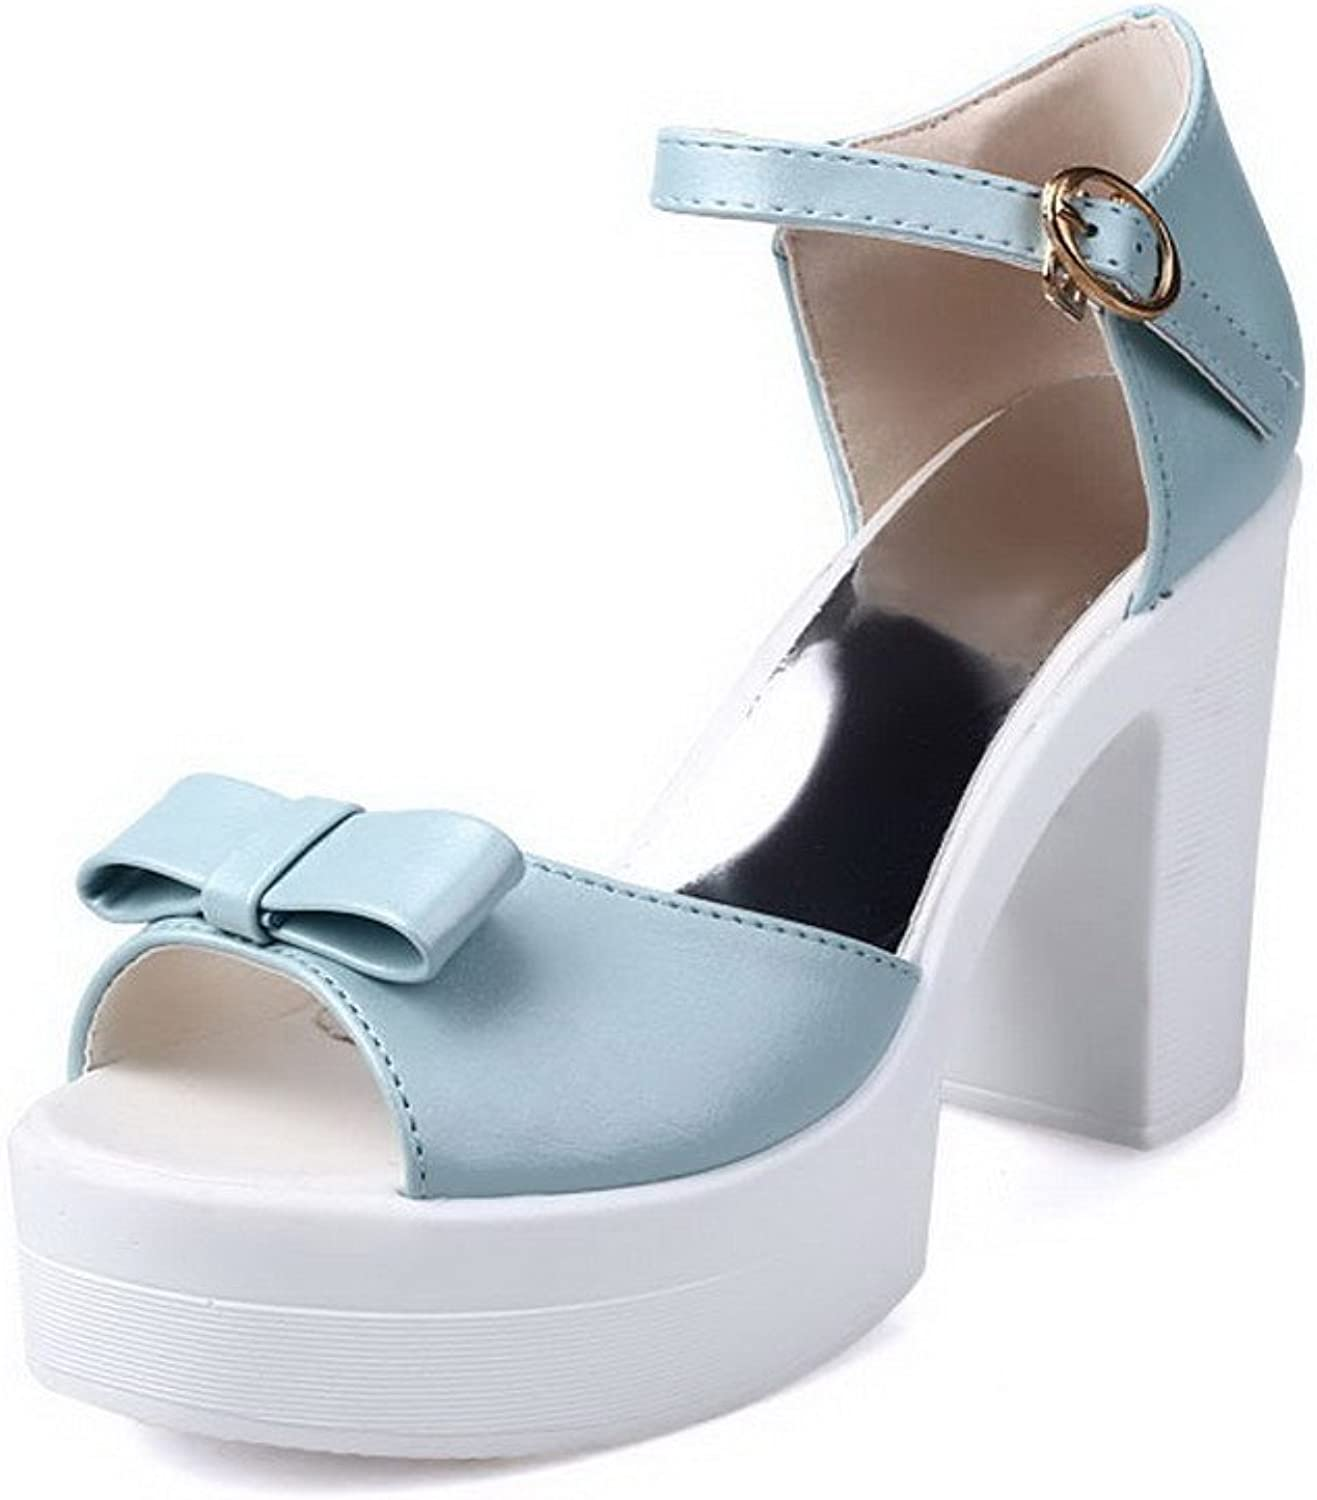 AmoonyFashion Women's Solid PU High-Heels Open Toe Buckle Platforms-Sandals